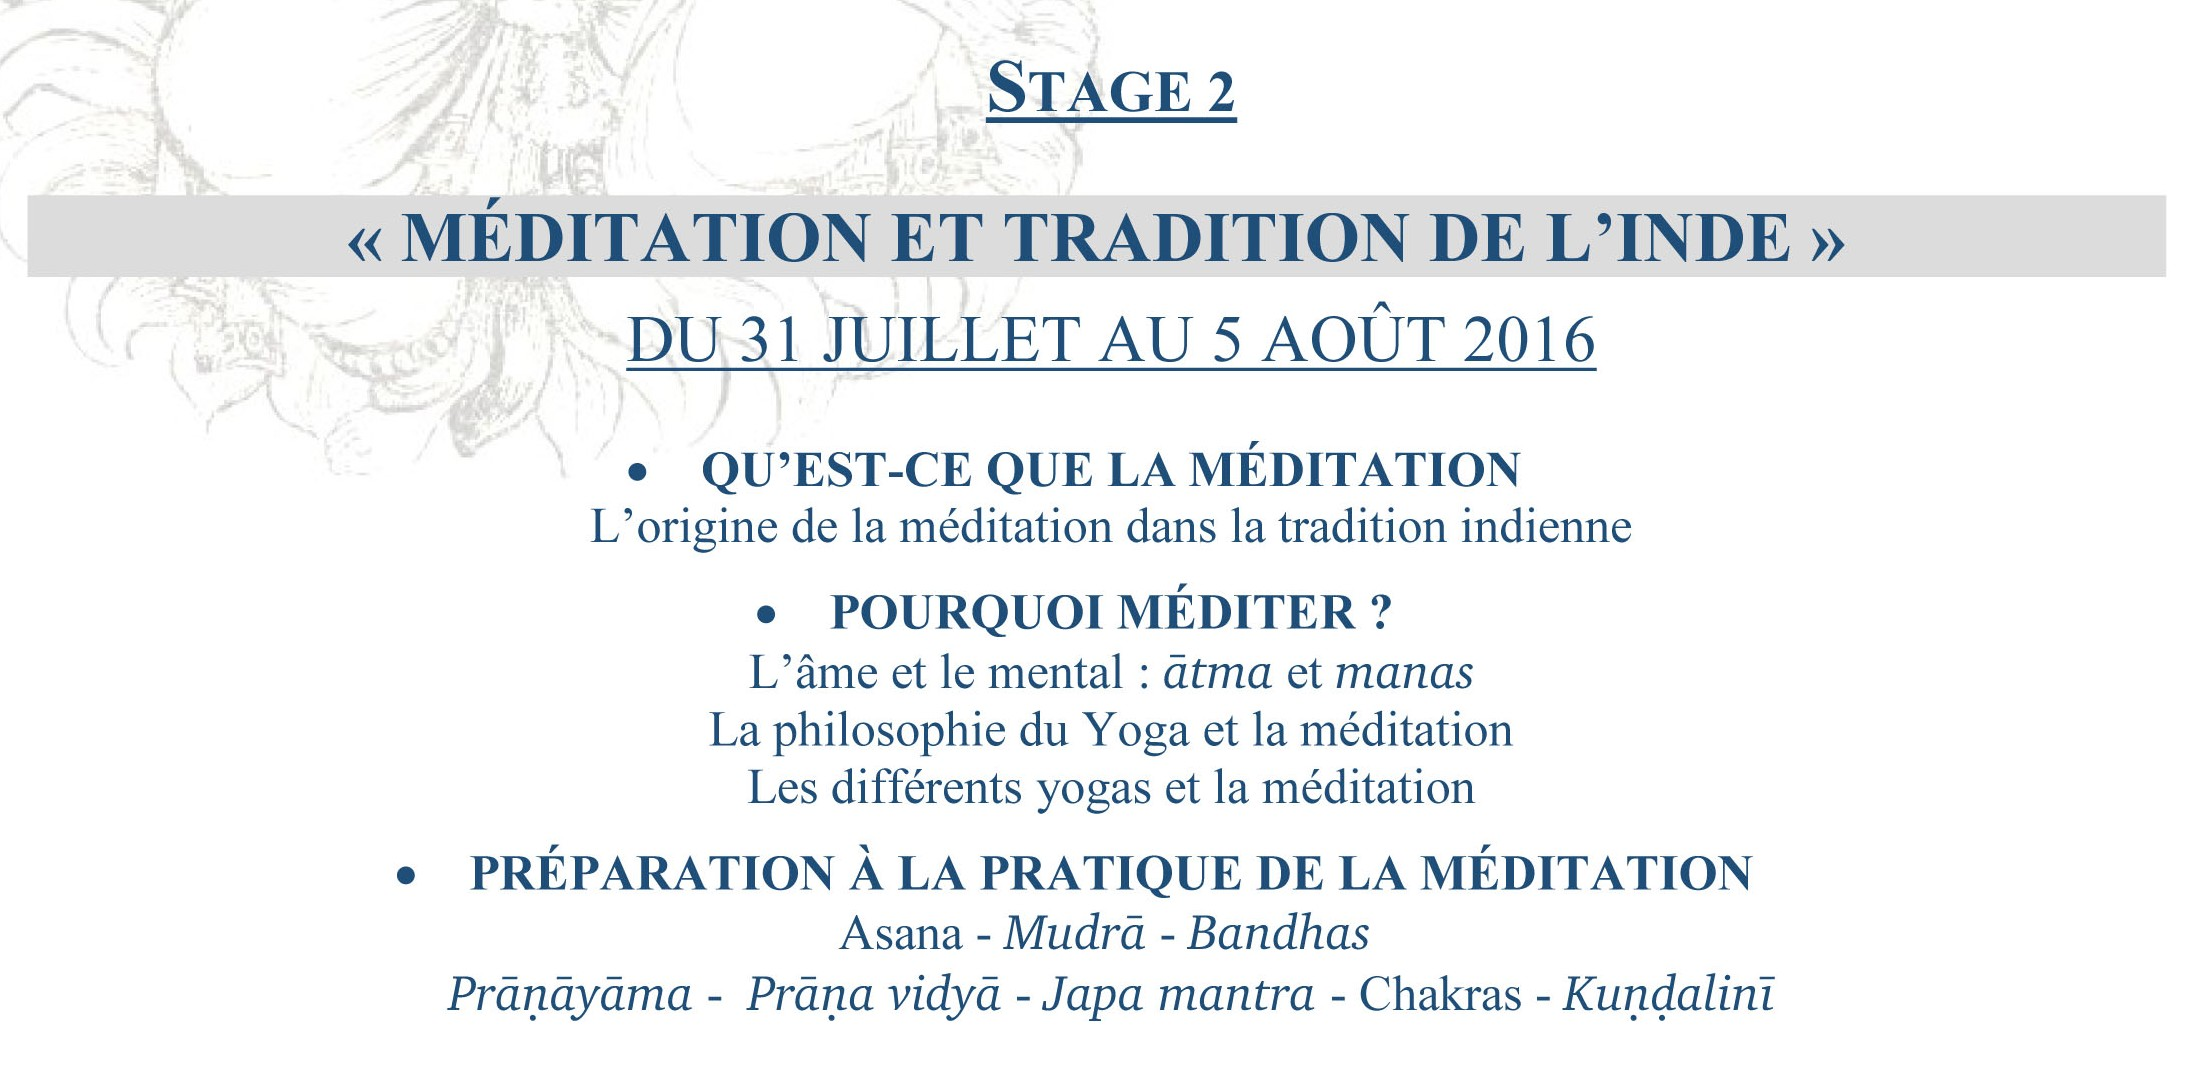 STAGE ETE 2016 STAGE 2 rect